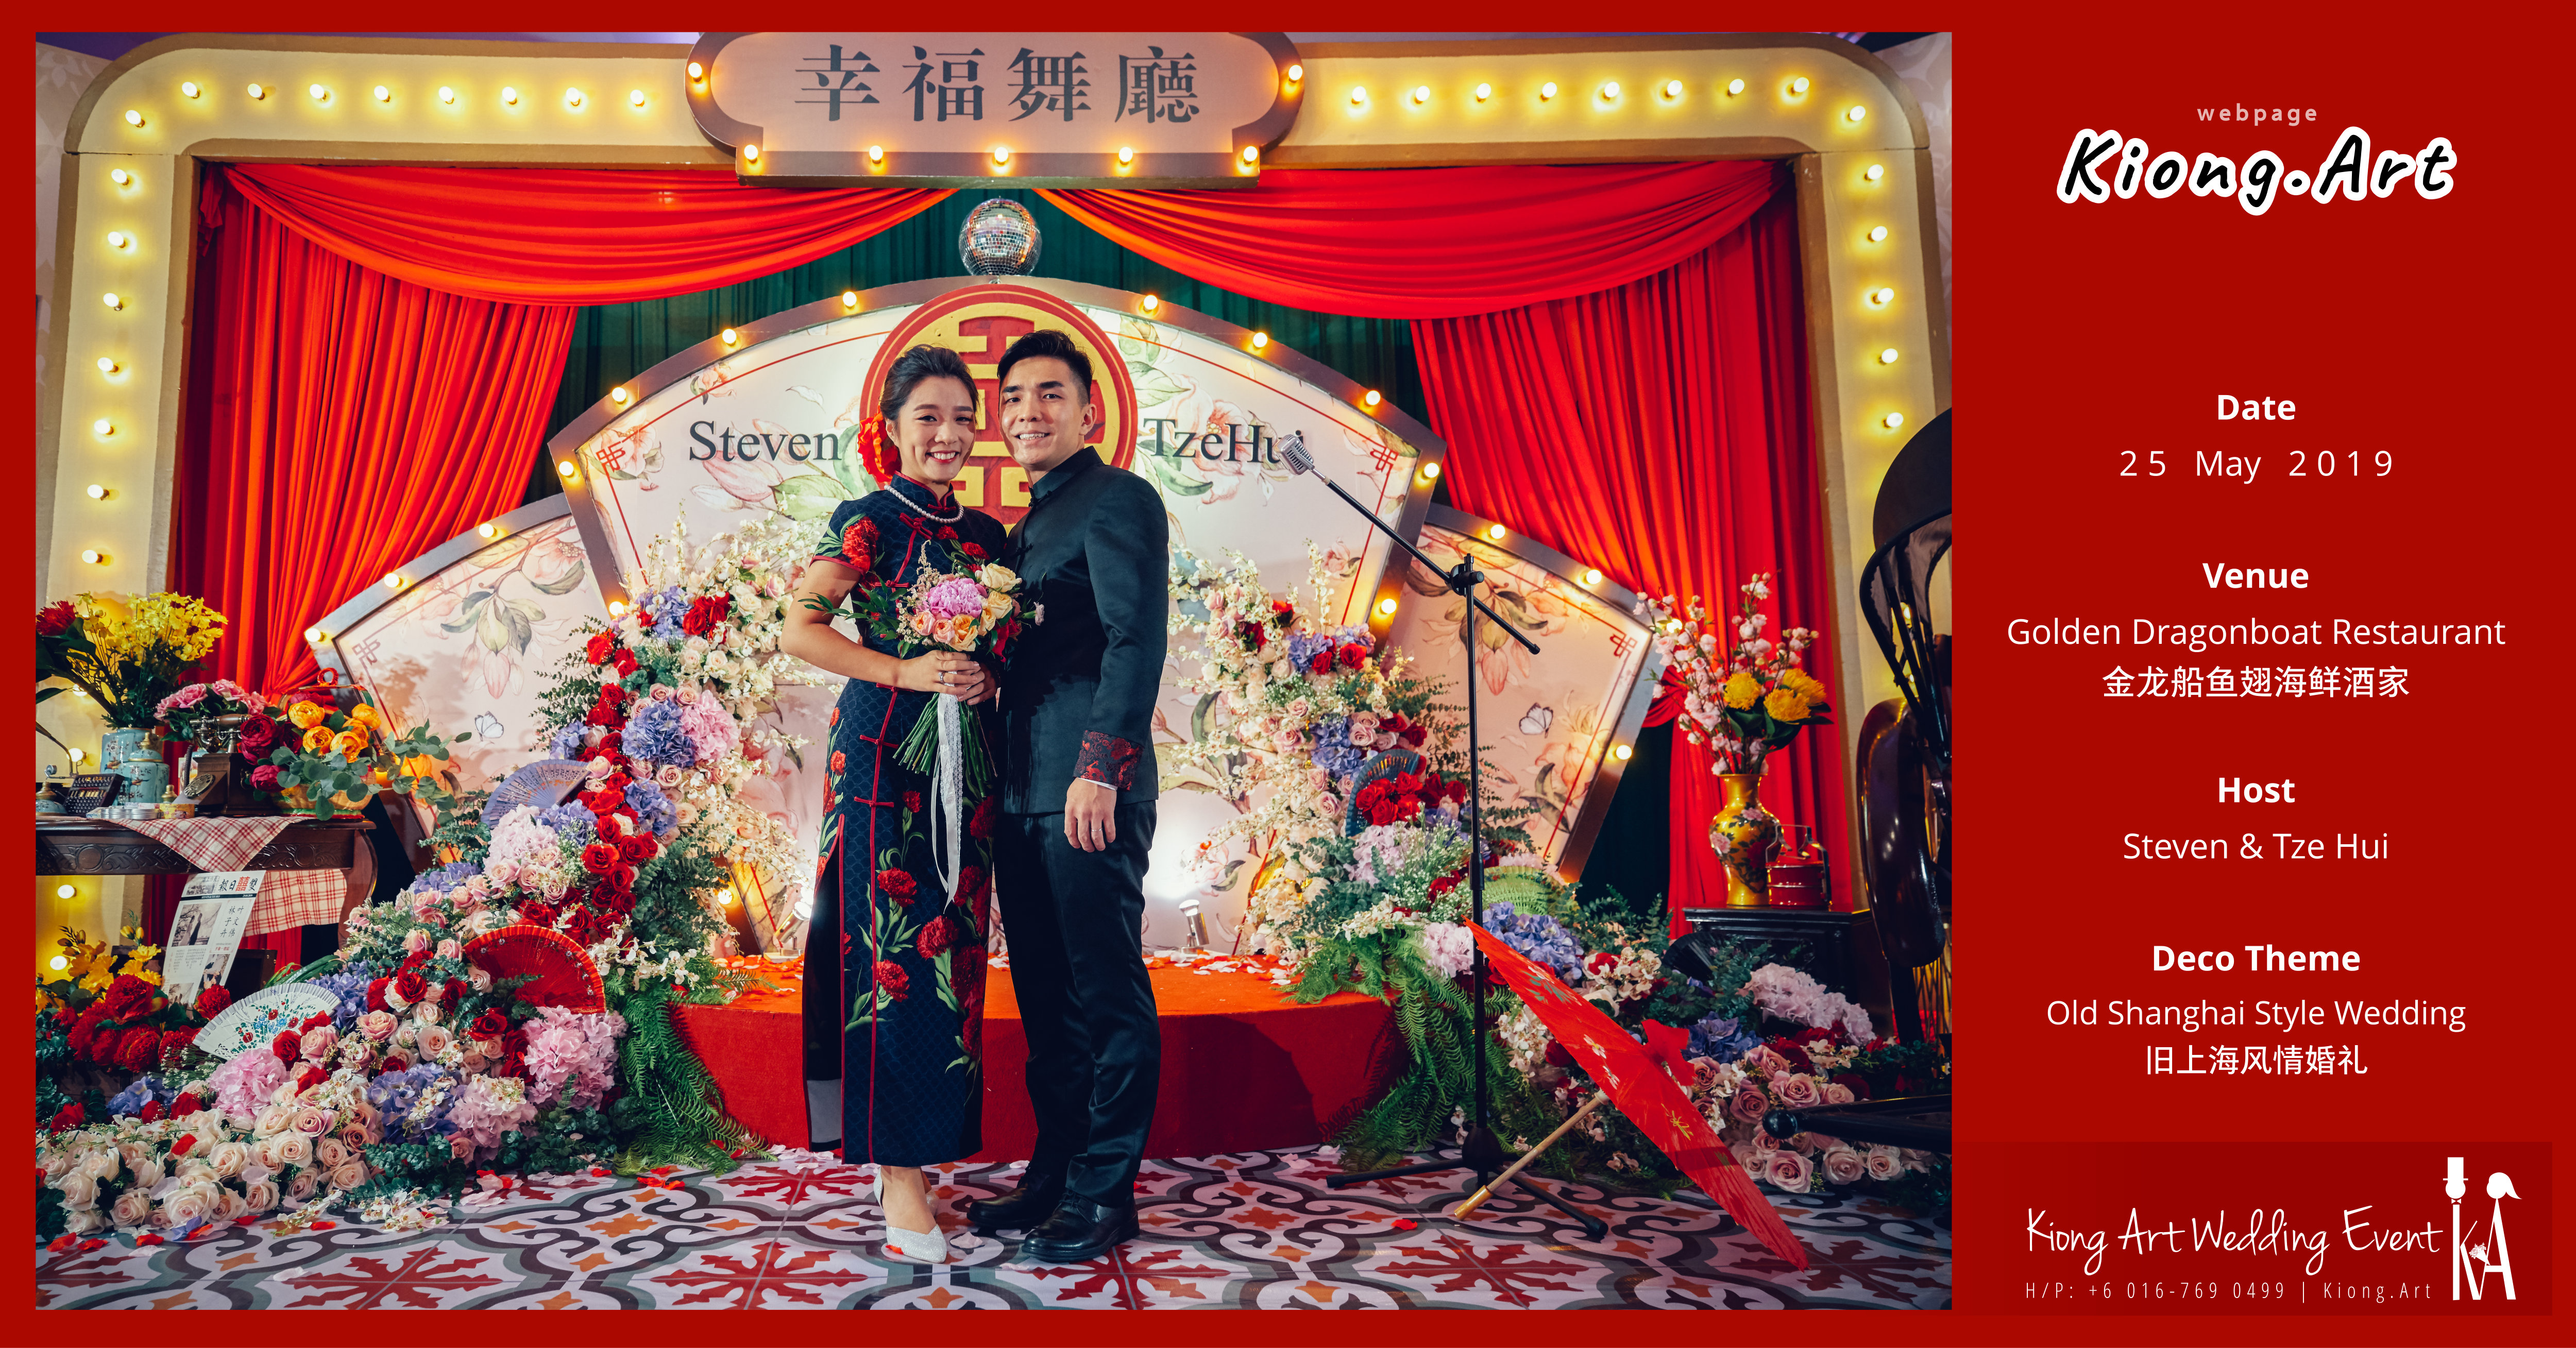 Kuala Lumpur Wedding Deco Decoration Kiong Art Wedding Deco Old Shanghai Style Wedding 旧上海风情婚礼 Steven and Tze Hui at Golden Dragonboat Restaurant 金龙船鱼翅海鲜酒家 Malaysia A16-A00-006